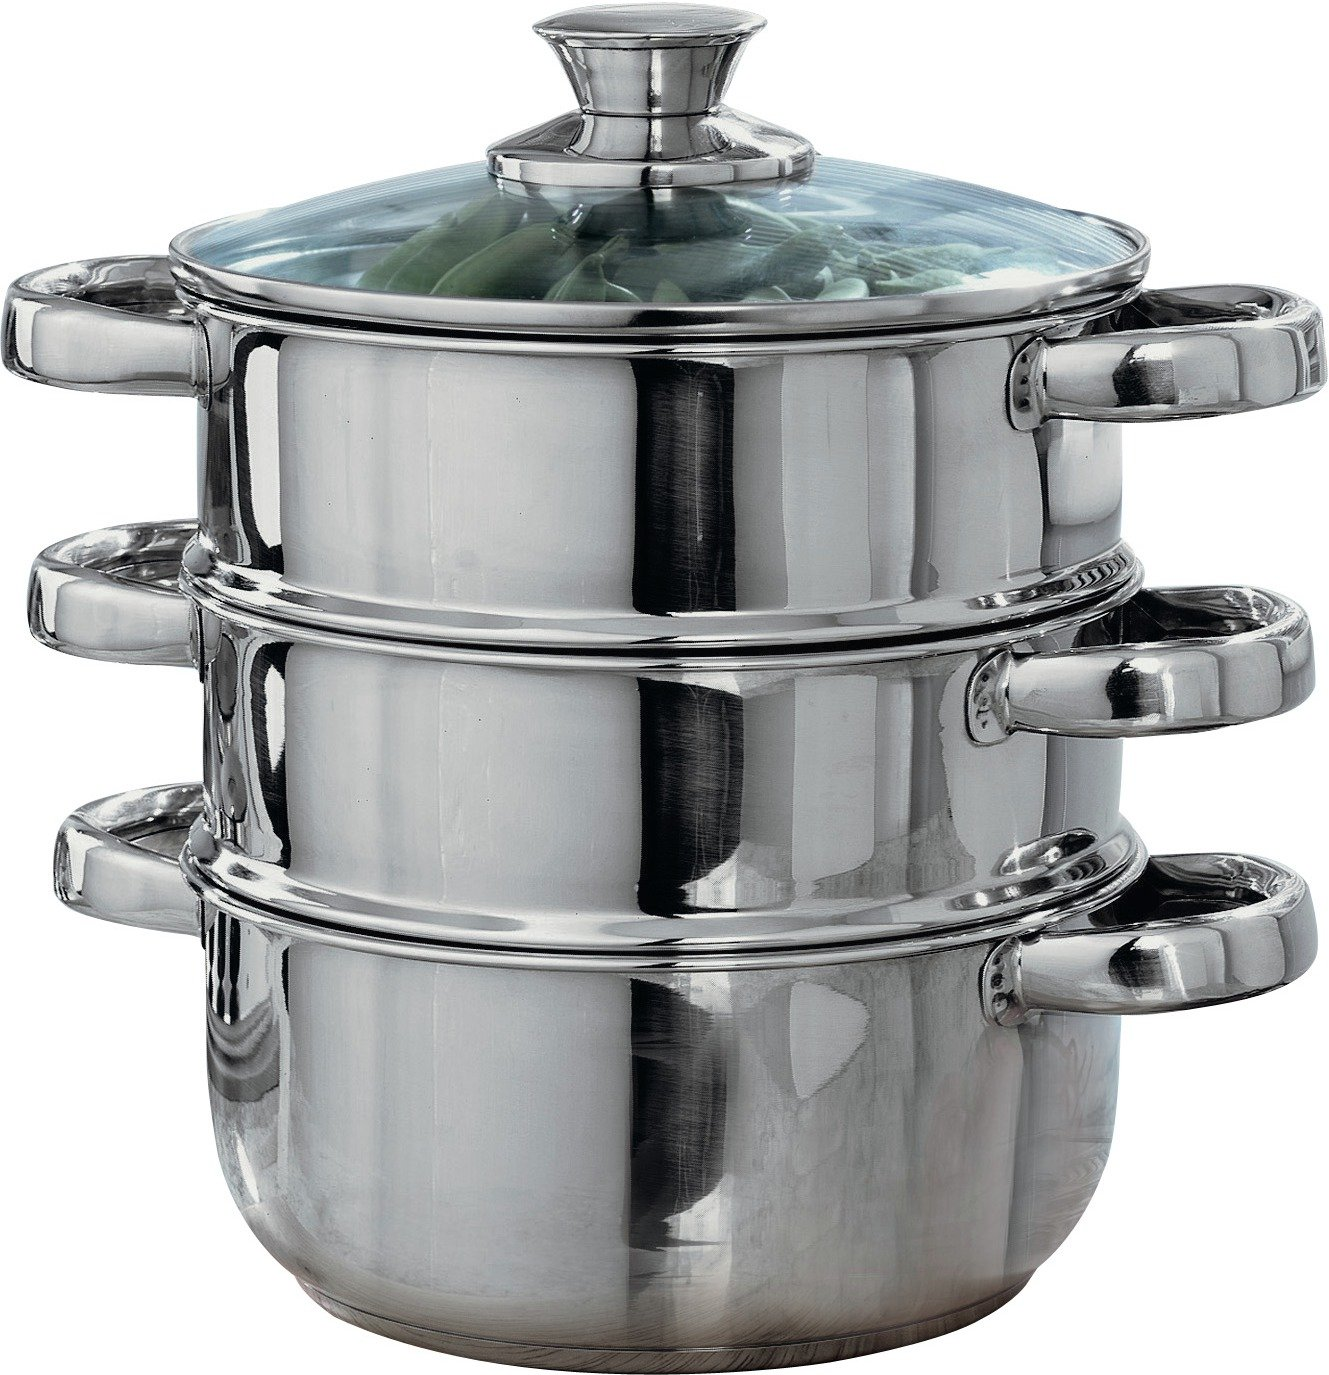 HOME - 18cm Stainless Steel 3 Tier Steamer